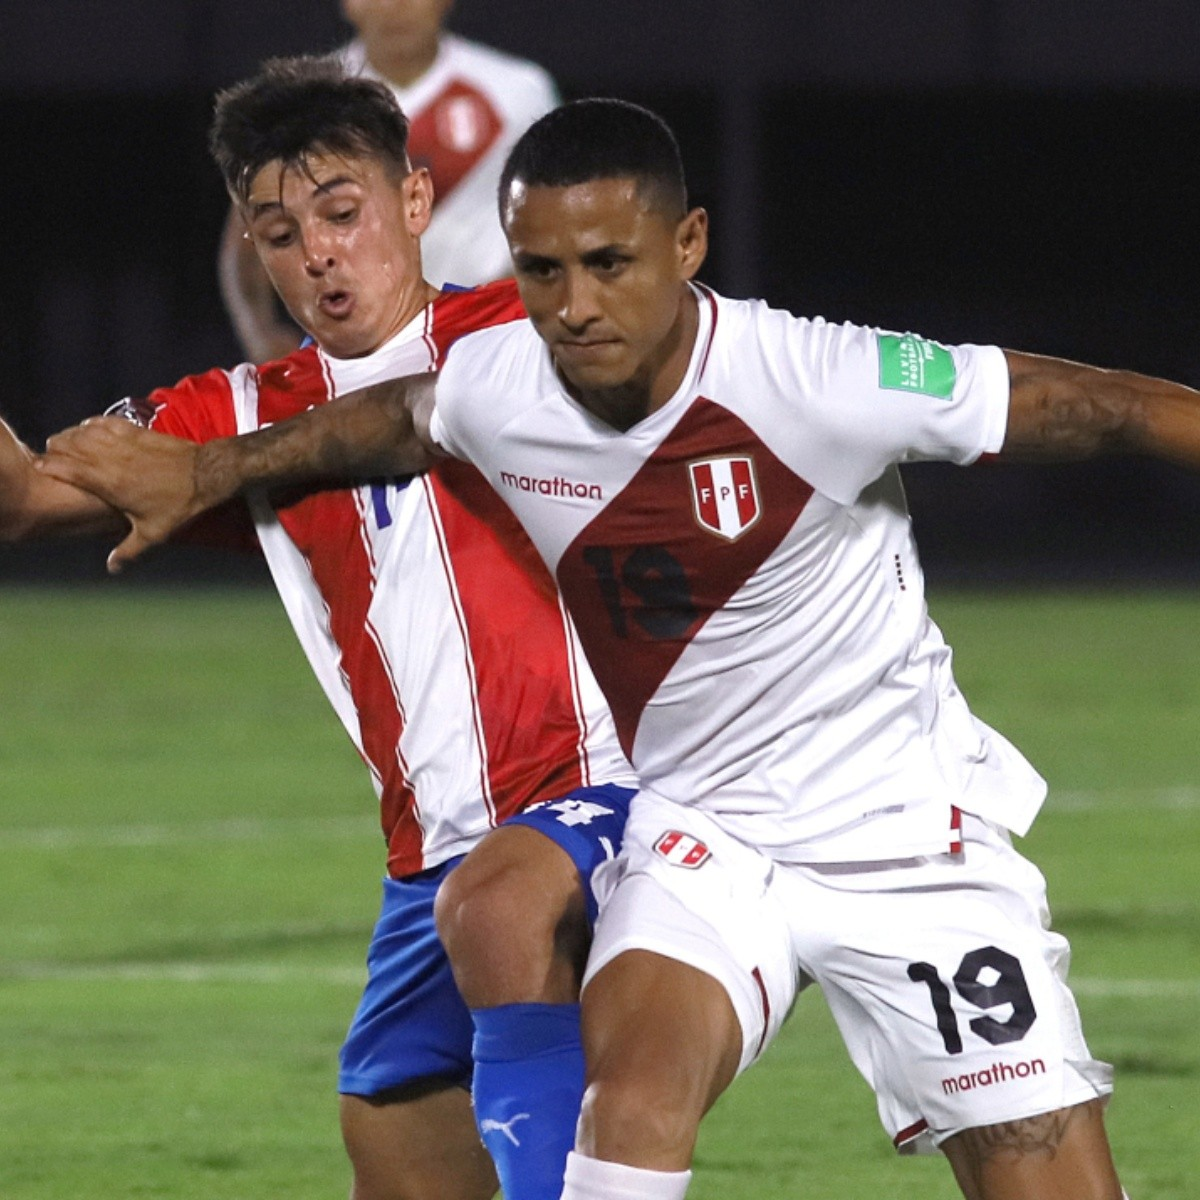 Paraguay Vs Peru Highlights And Goals Watch Here The Highlights Of The 2 2 Draw For The Fifa World Cup 2022 Qualifiers Video Bolavip Us Uruguay vs ecuador @ 19:00 local time. bolavip us